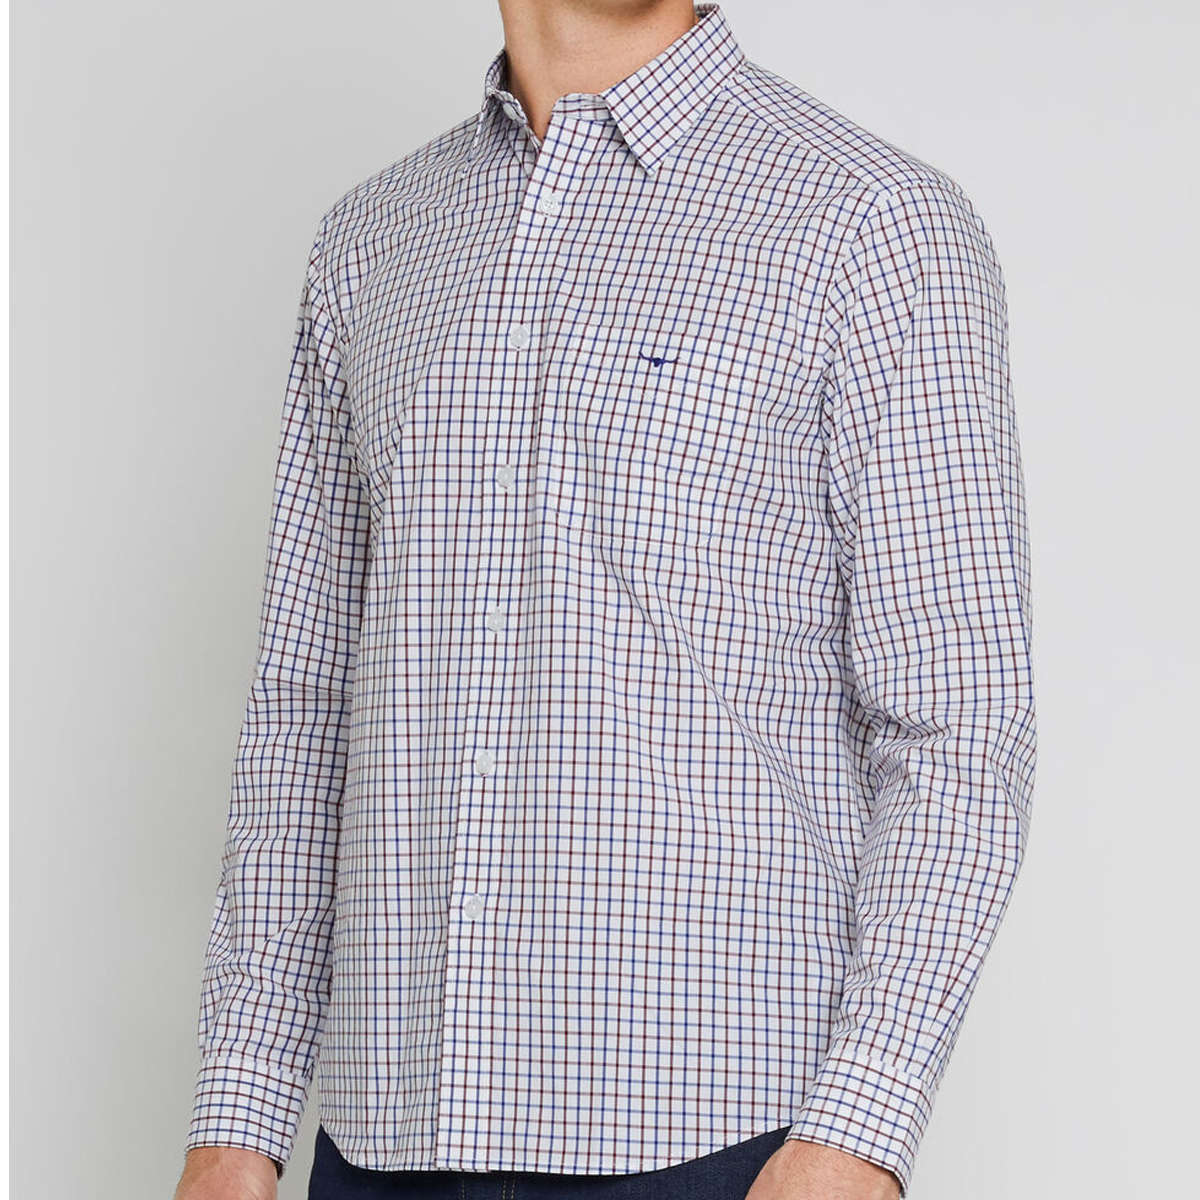 RM Williams Collins Button Down Shirt – Large Check- Navy/ Burgundy/ White